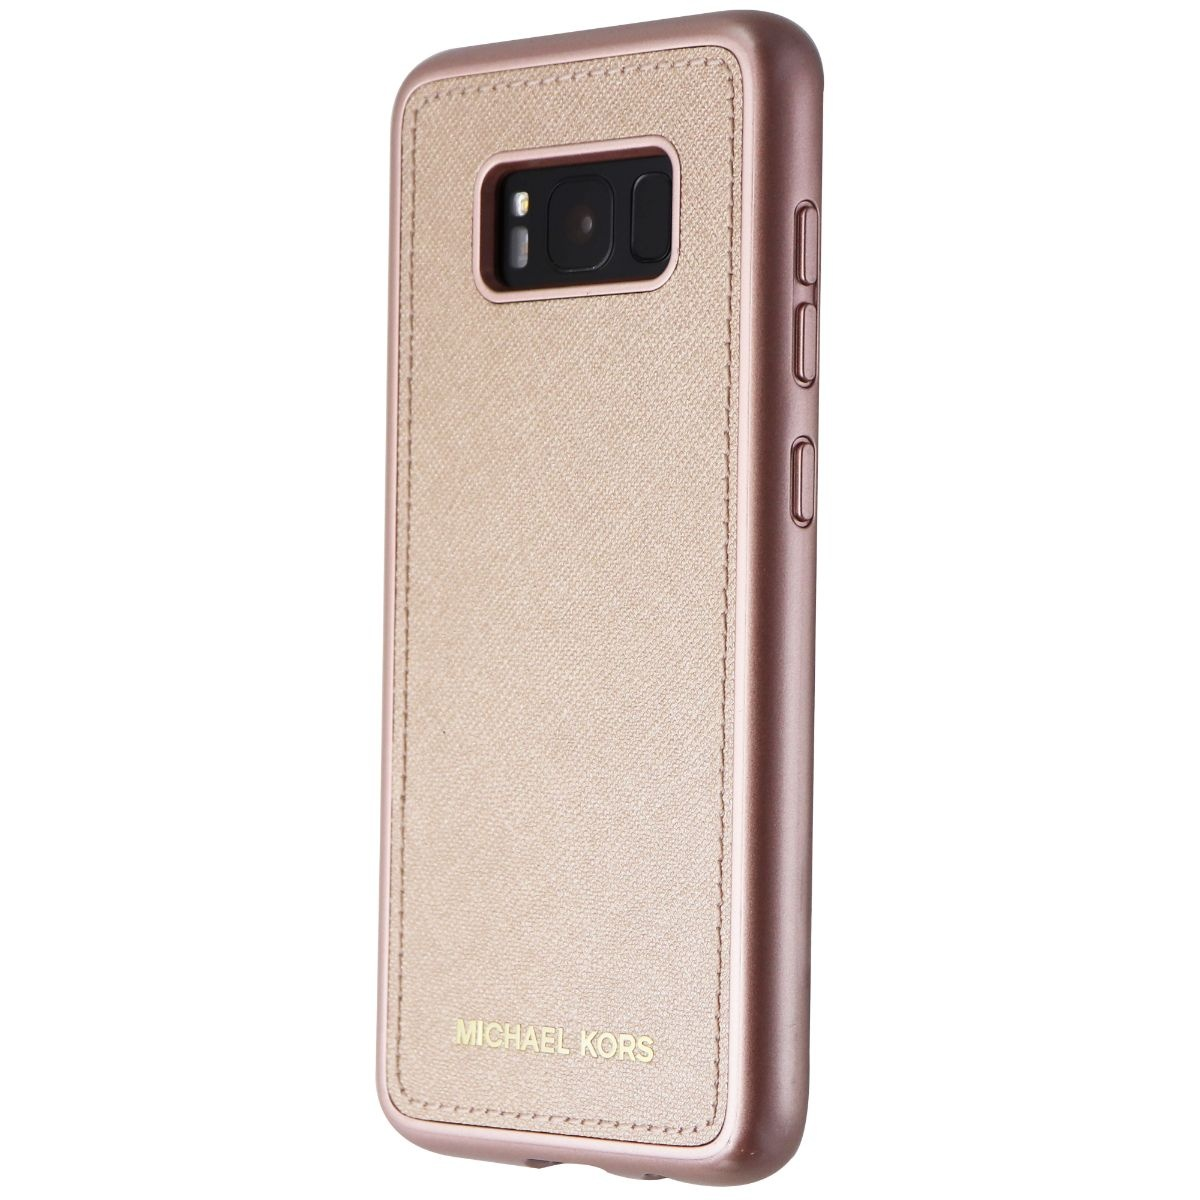 08e25d775b1d Michael Kors Snap-On Leather Case for Samsung Galaxy S8 - Rose Gold